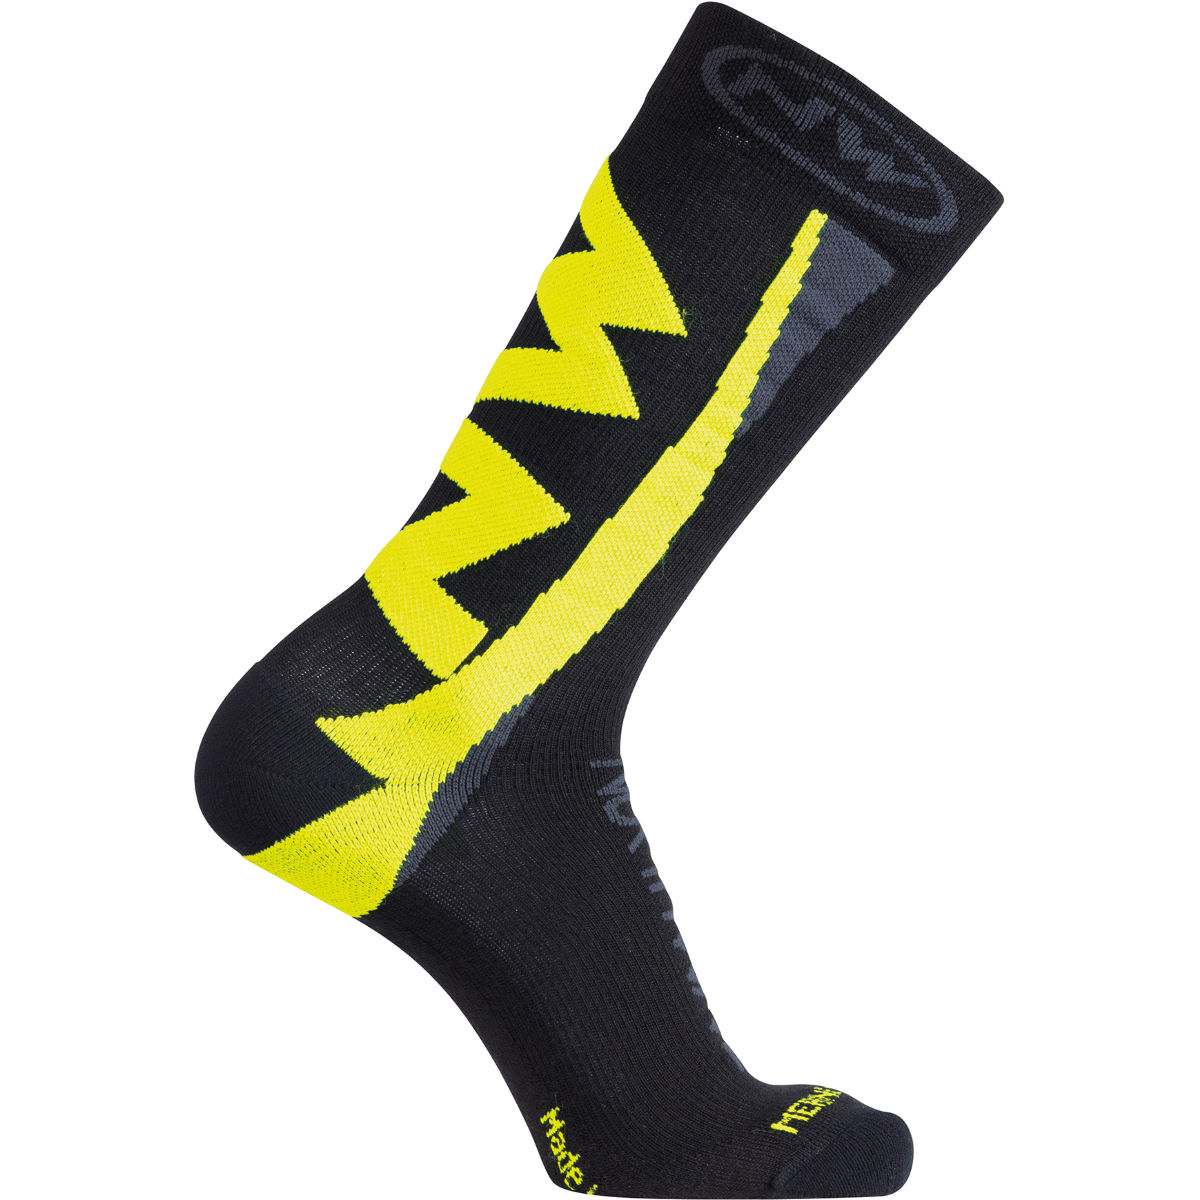 Chaussettes montantes Northwave Extreme Hiver - L Black/Yellow Fluro